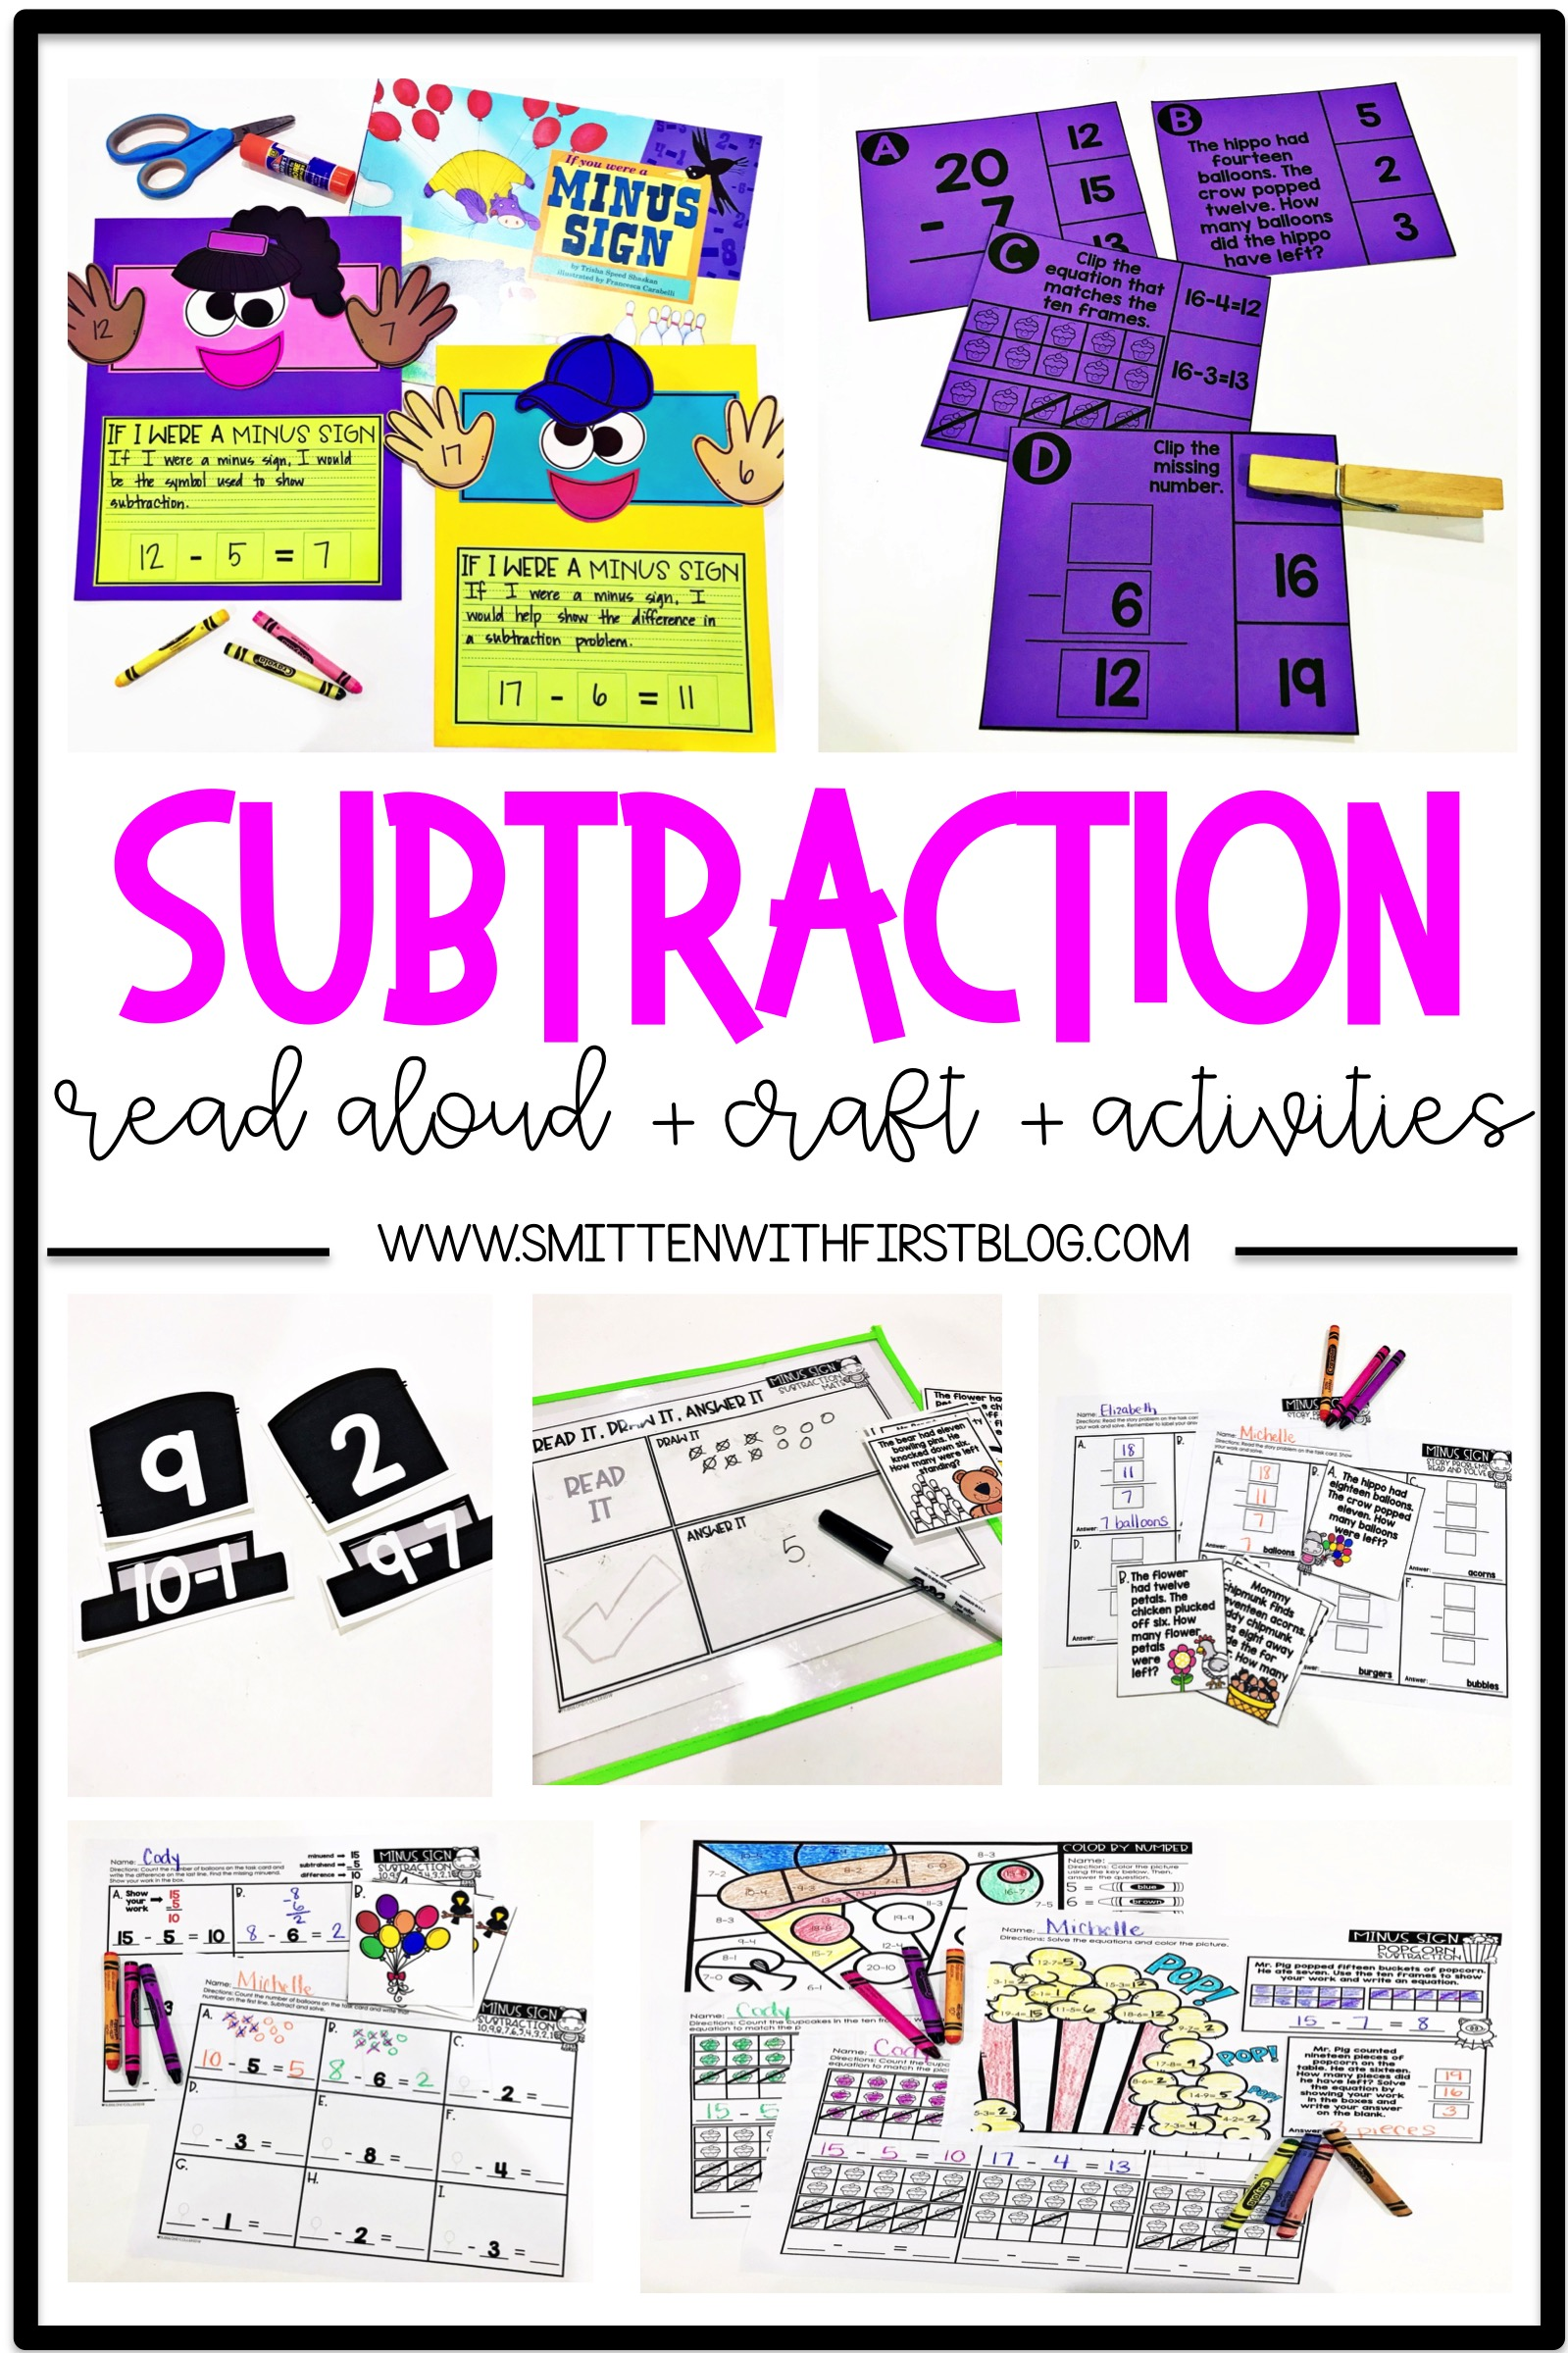 Subtraction activities and read alouds